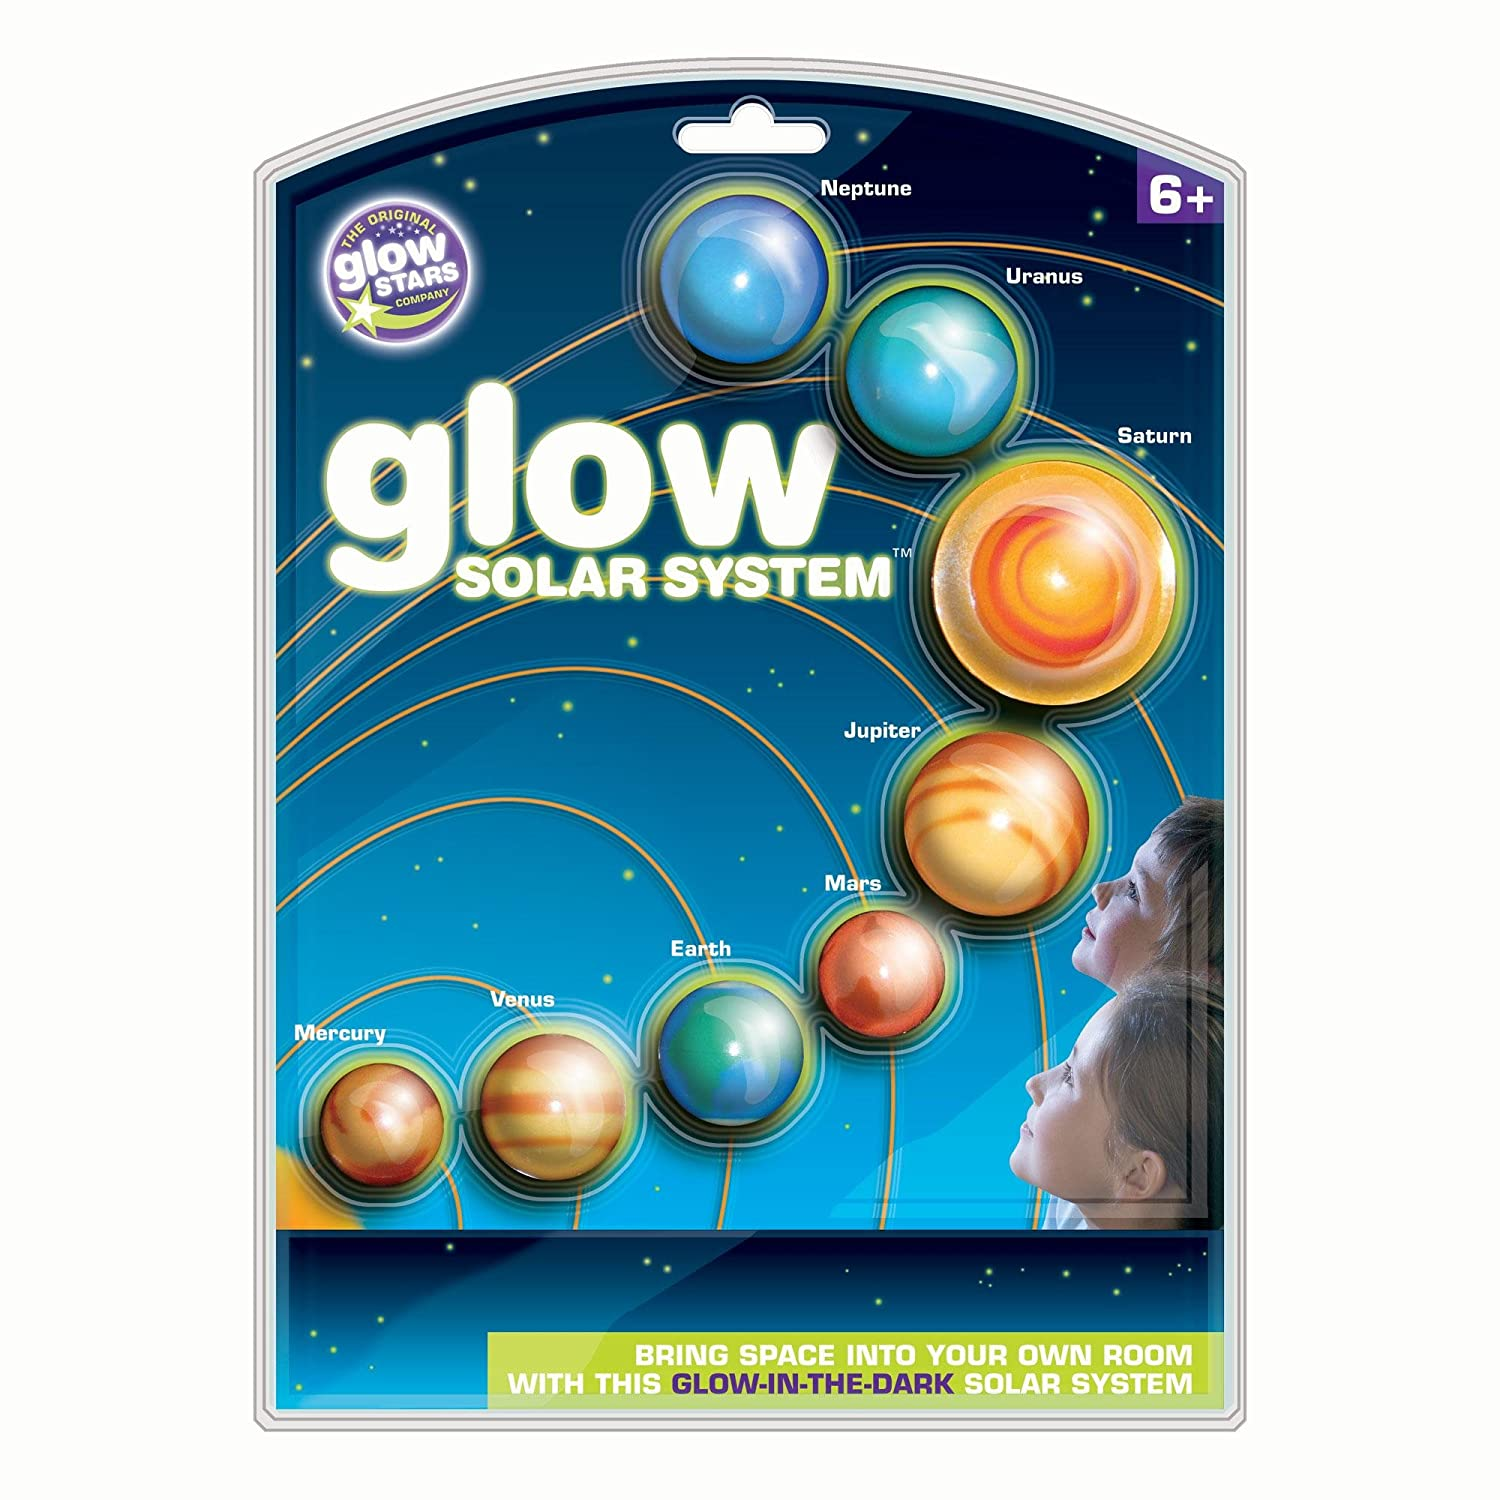 Amazon.com: Brainstorm Glow Solar System: Toys & Games